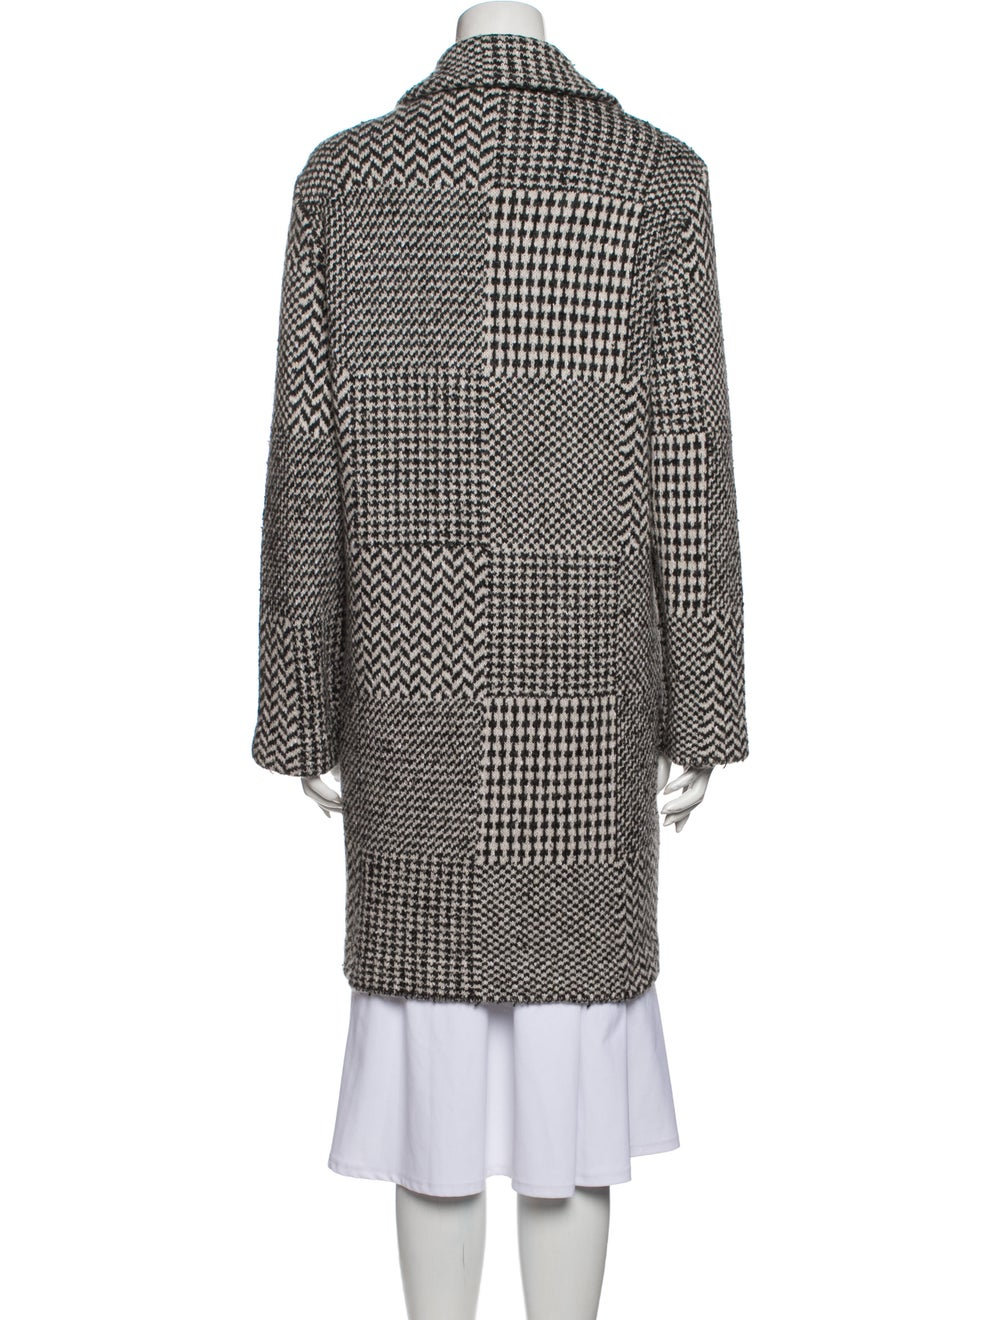 Anne Claire Tweed Pattern Peacoat Grey - image 3